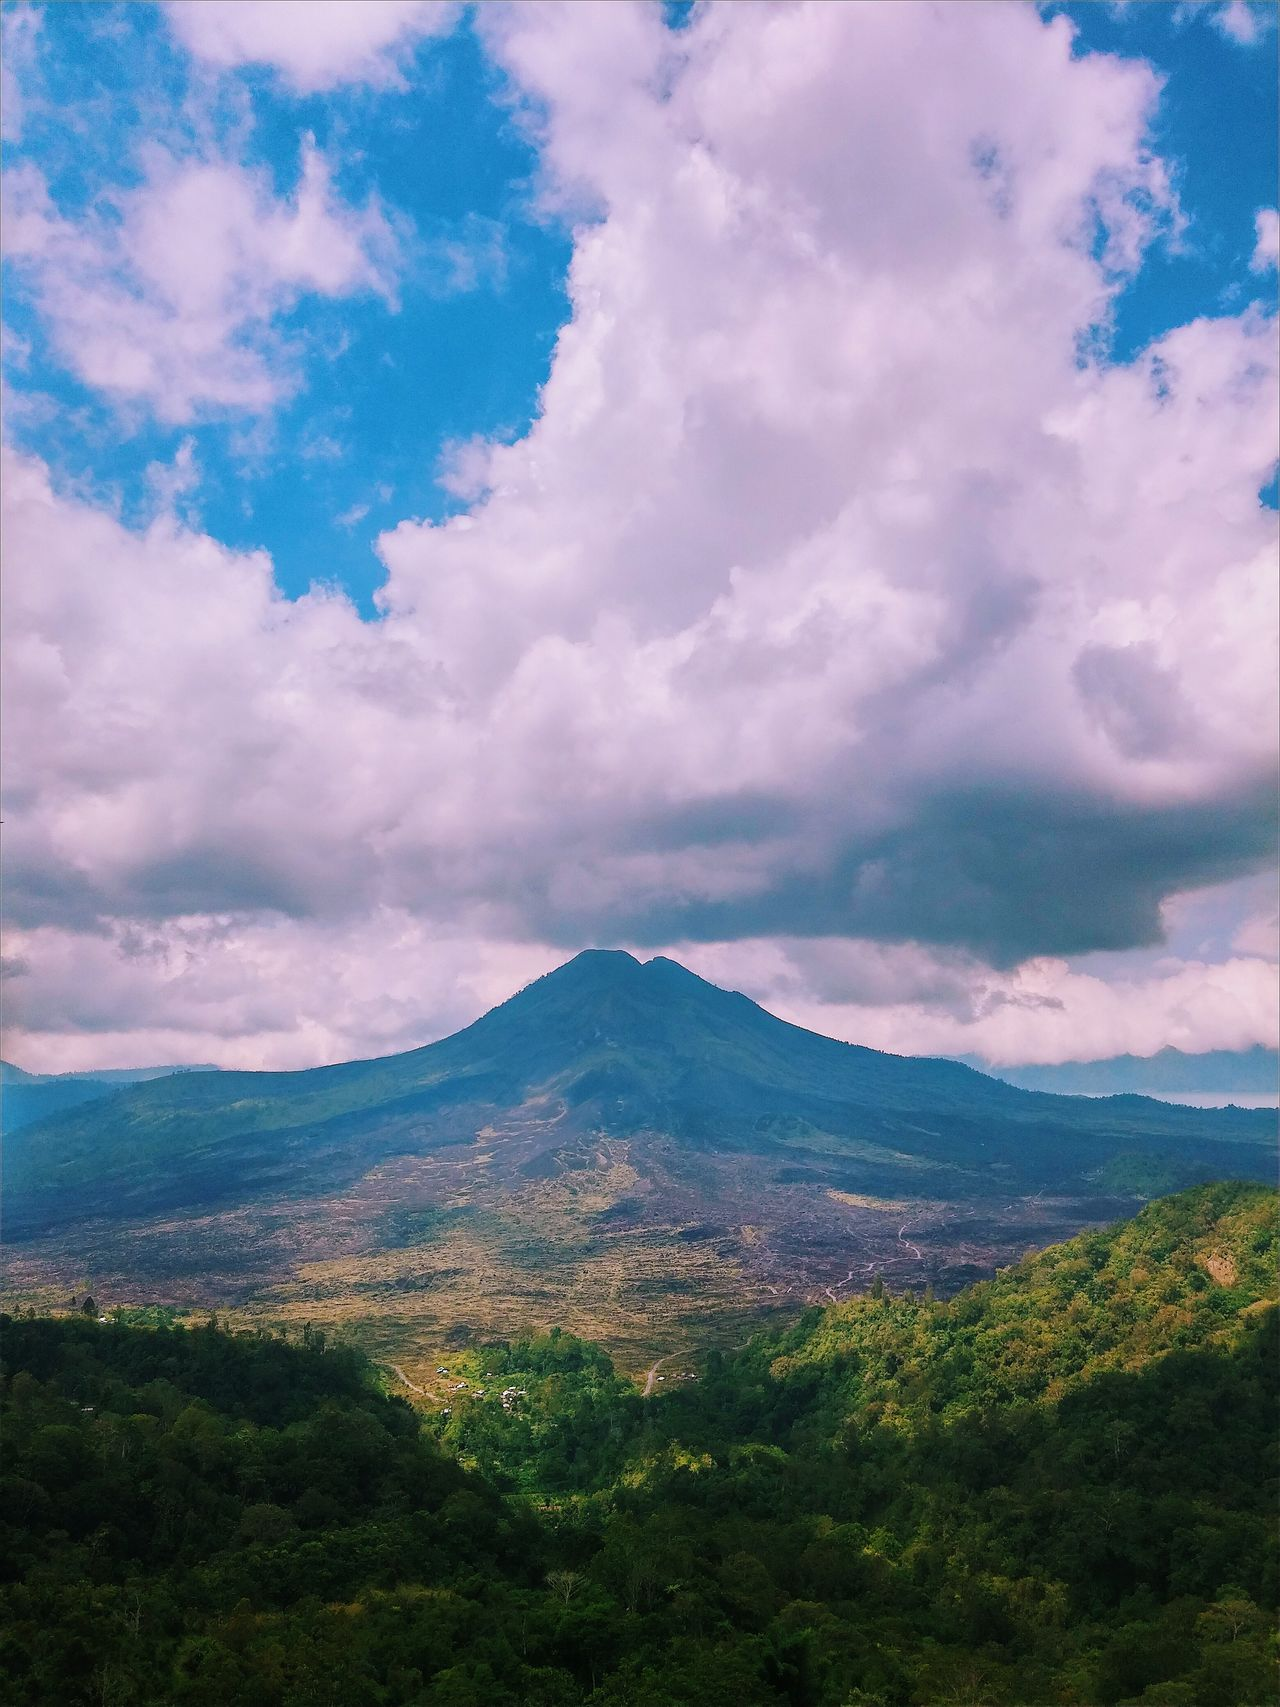 Nature_collection EyeEm Nature Lover Landscape_Collection Landscape_photography Mountain View Volcano Sky And Clouds Big Clouds Mount Batur Landscapes With WhiteWall Blue Wave